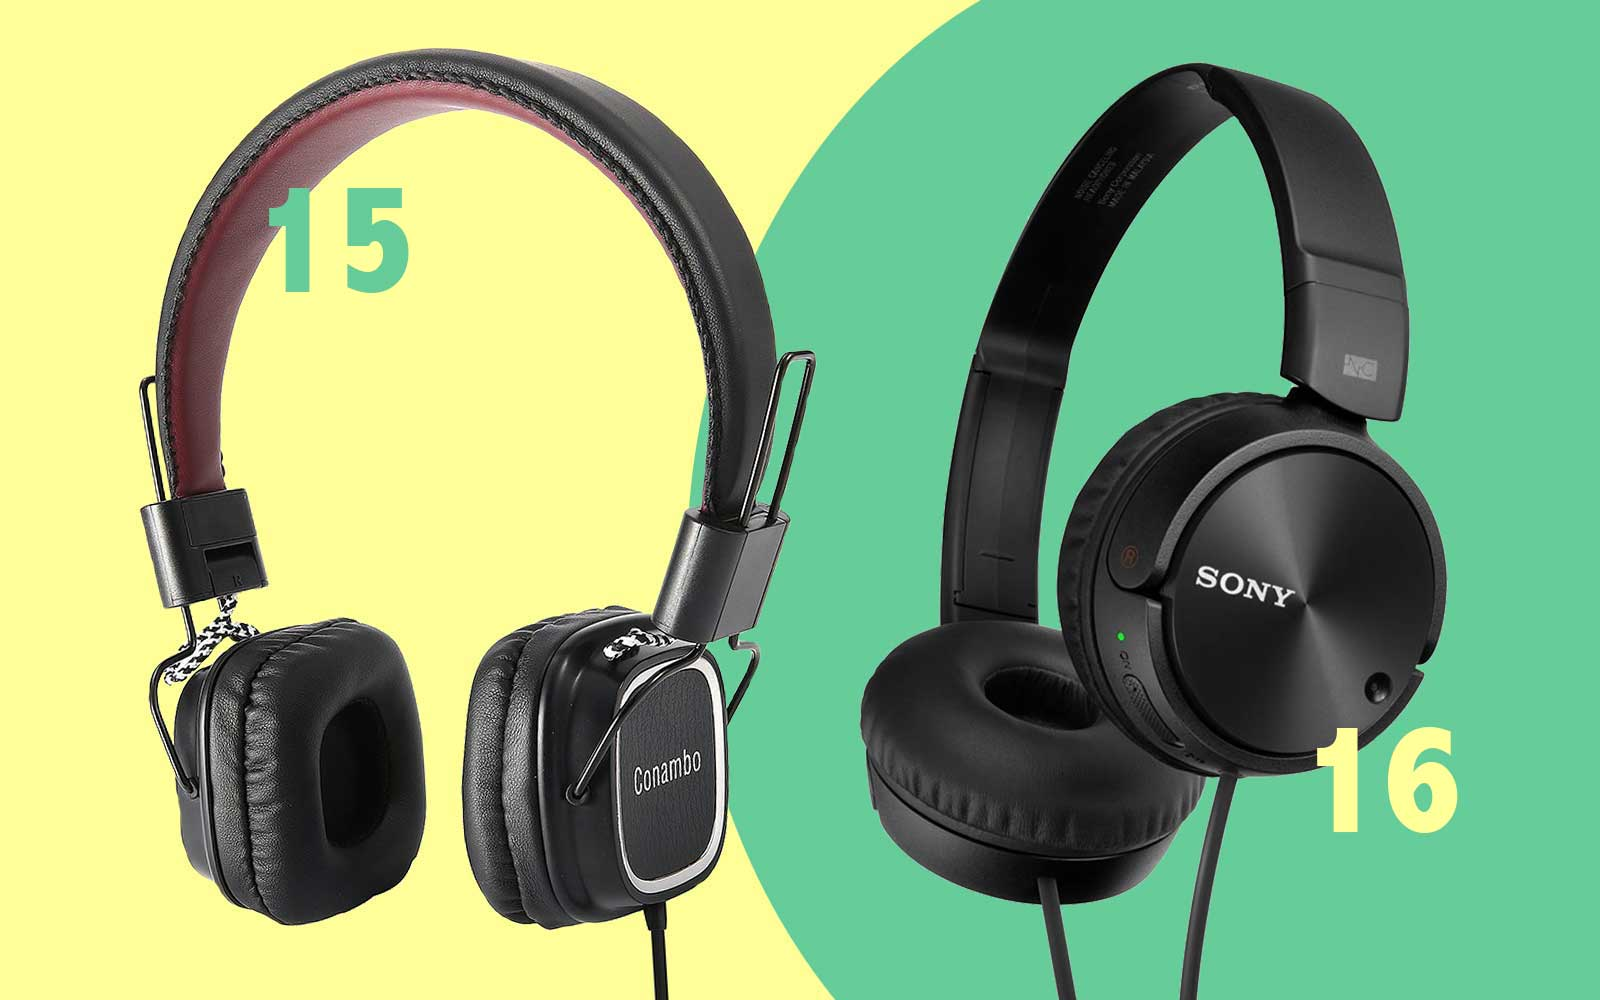 Wired noise-canceling headphones from Conambo and Sony